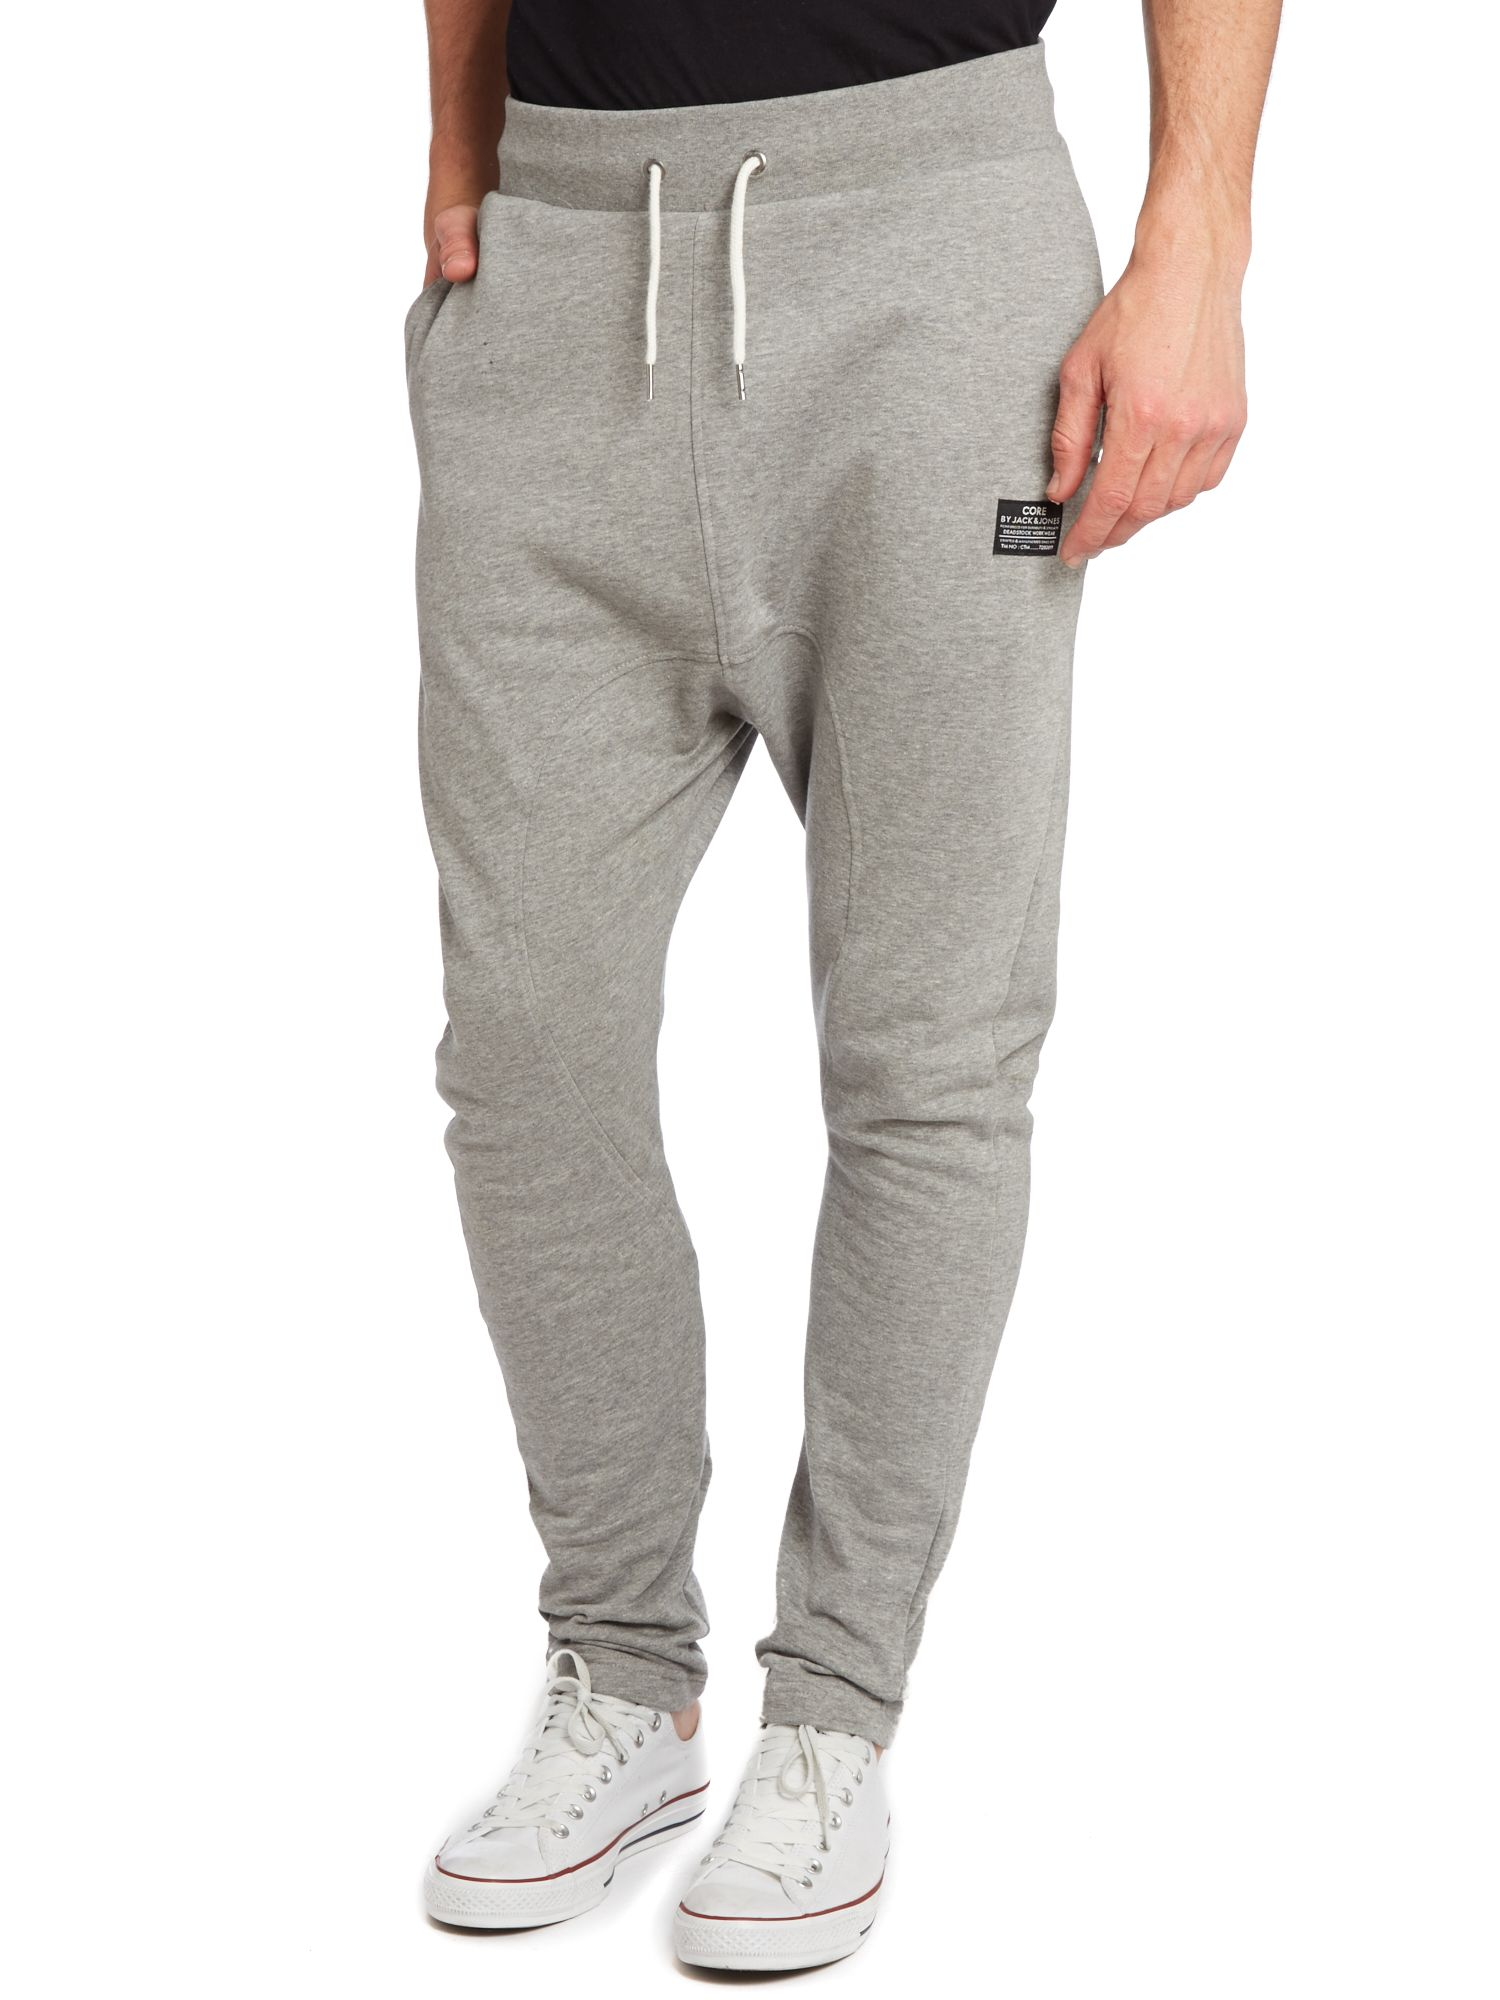 Drop fit tracksuit bottoms with slim leg